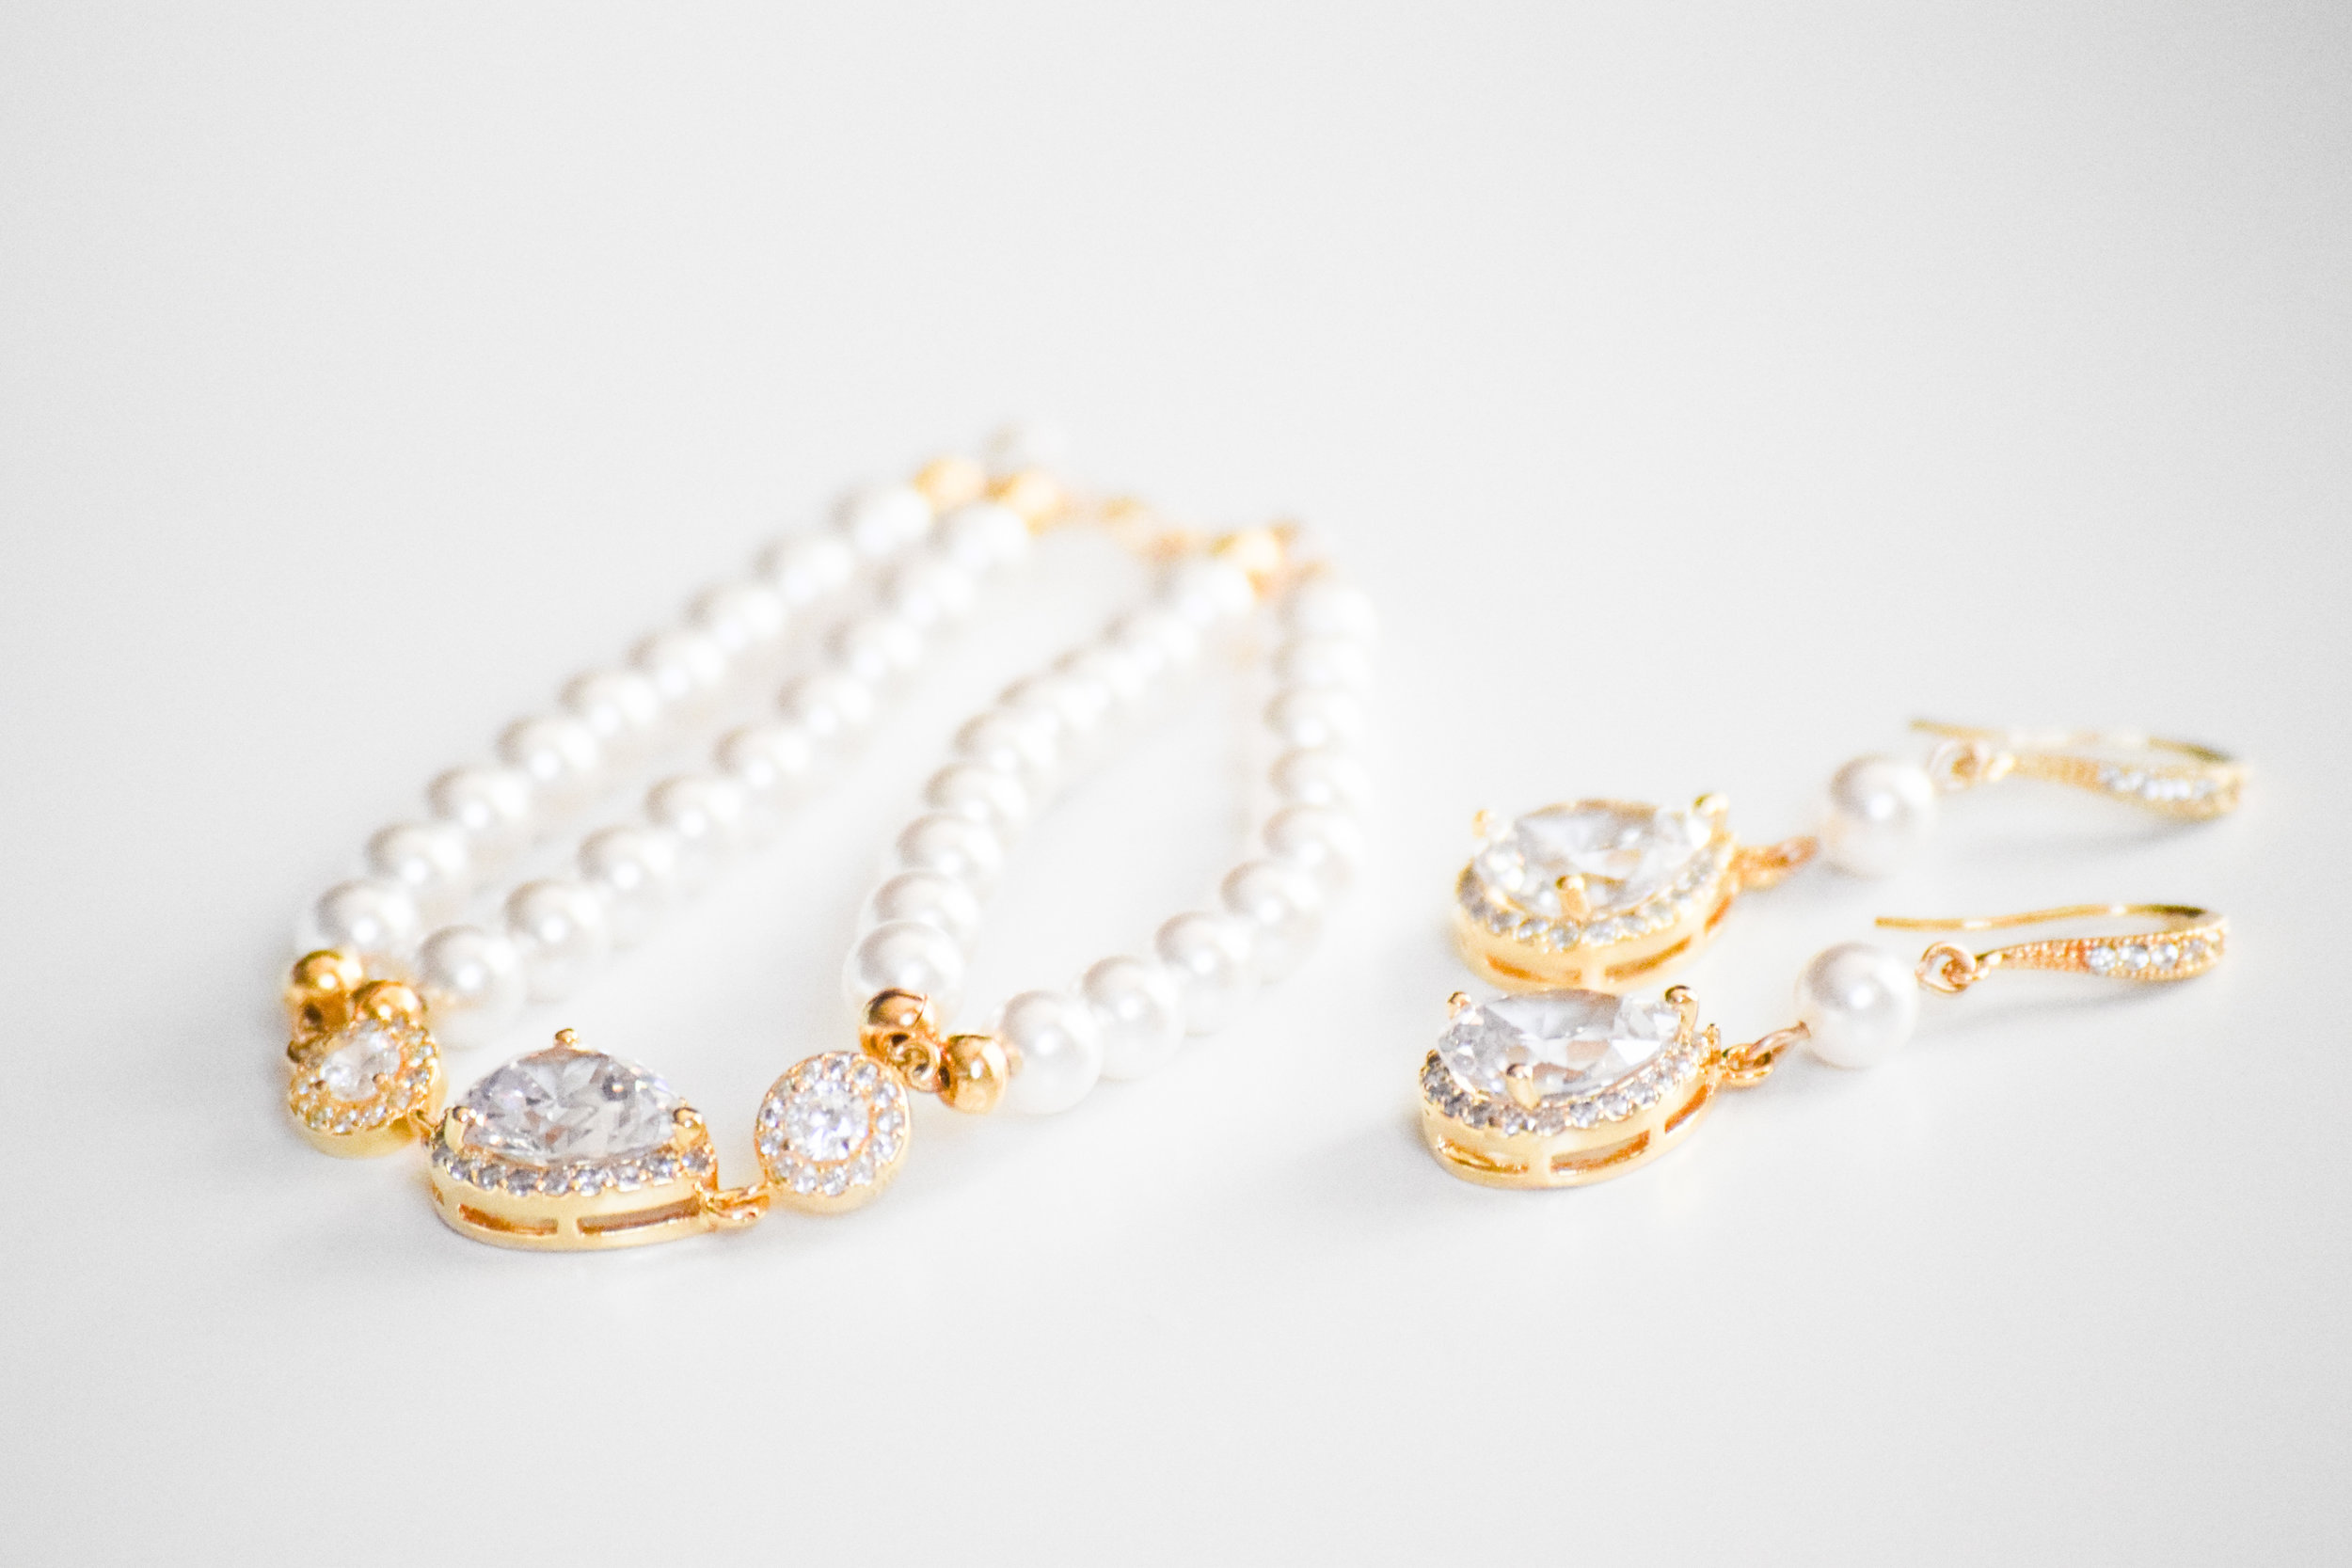 Gold + Pearl Bridal Jewelry Set by Estylo Jewelry